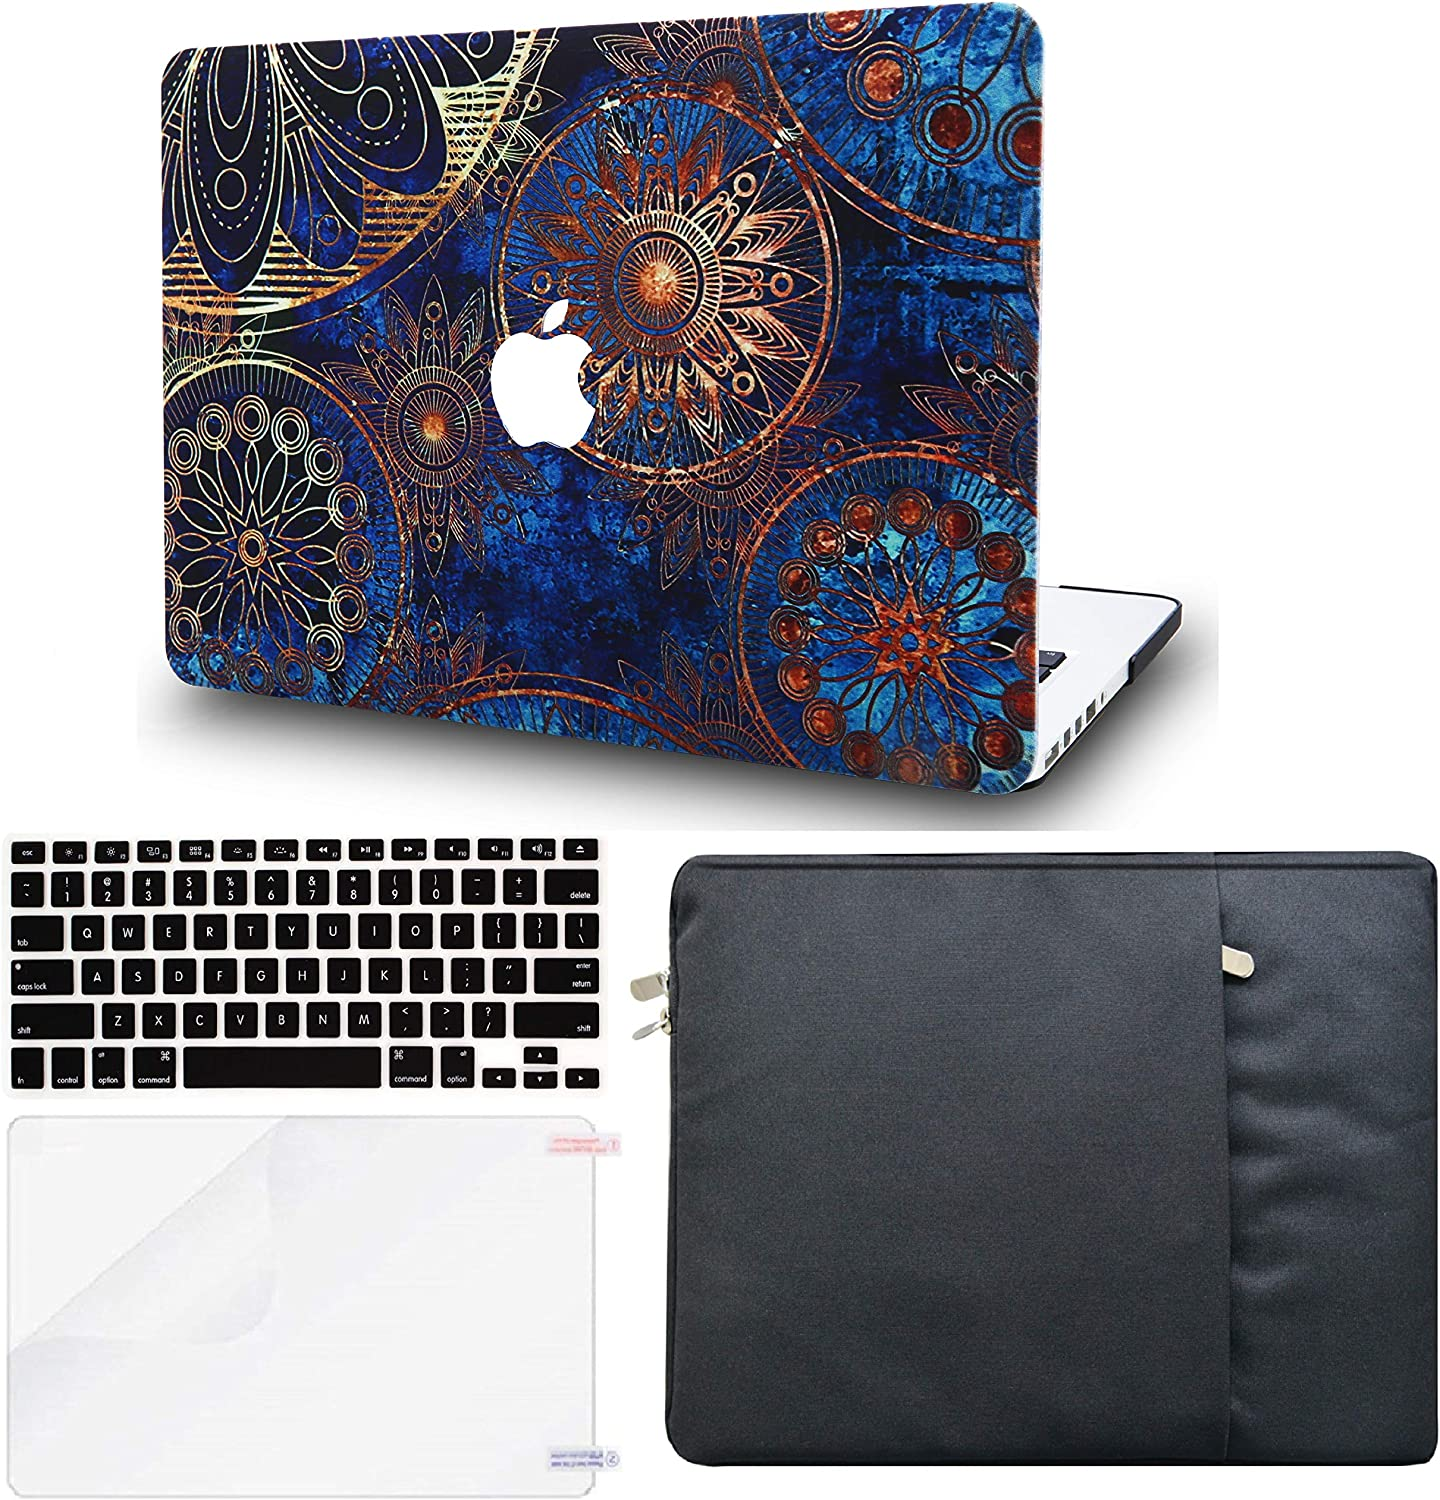 "LuvCase 4in1 Laptop Case for MacBook Pro 13""(2020) with Touch Bar A2251/A2289 Hard Shell Cover, Sleeve, Keyboard Cover & Screen Protector (Bohemian)"